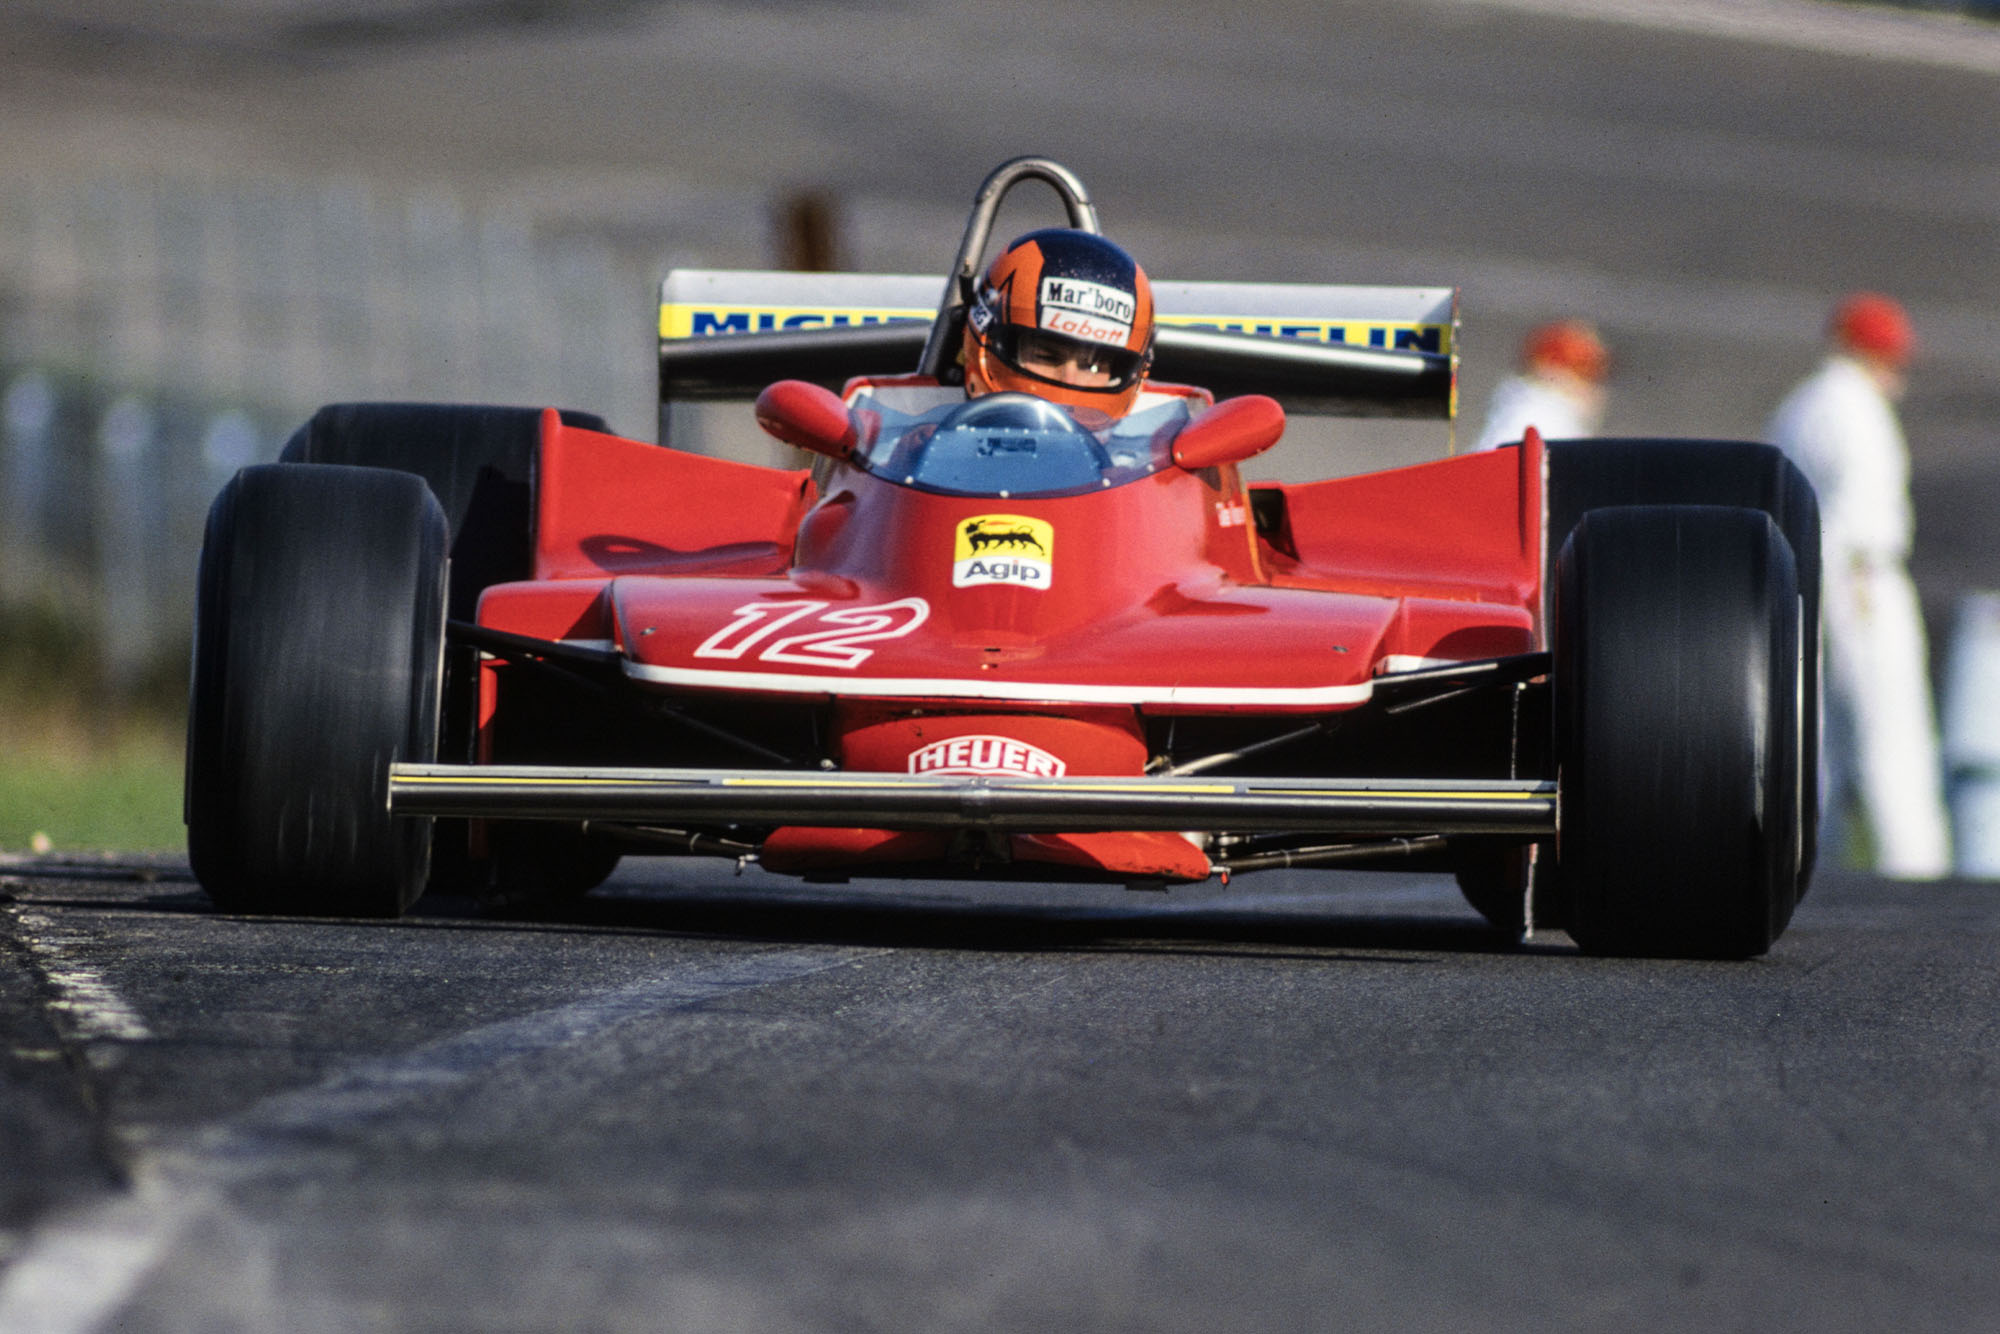 1979 US GP East feature